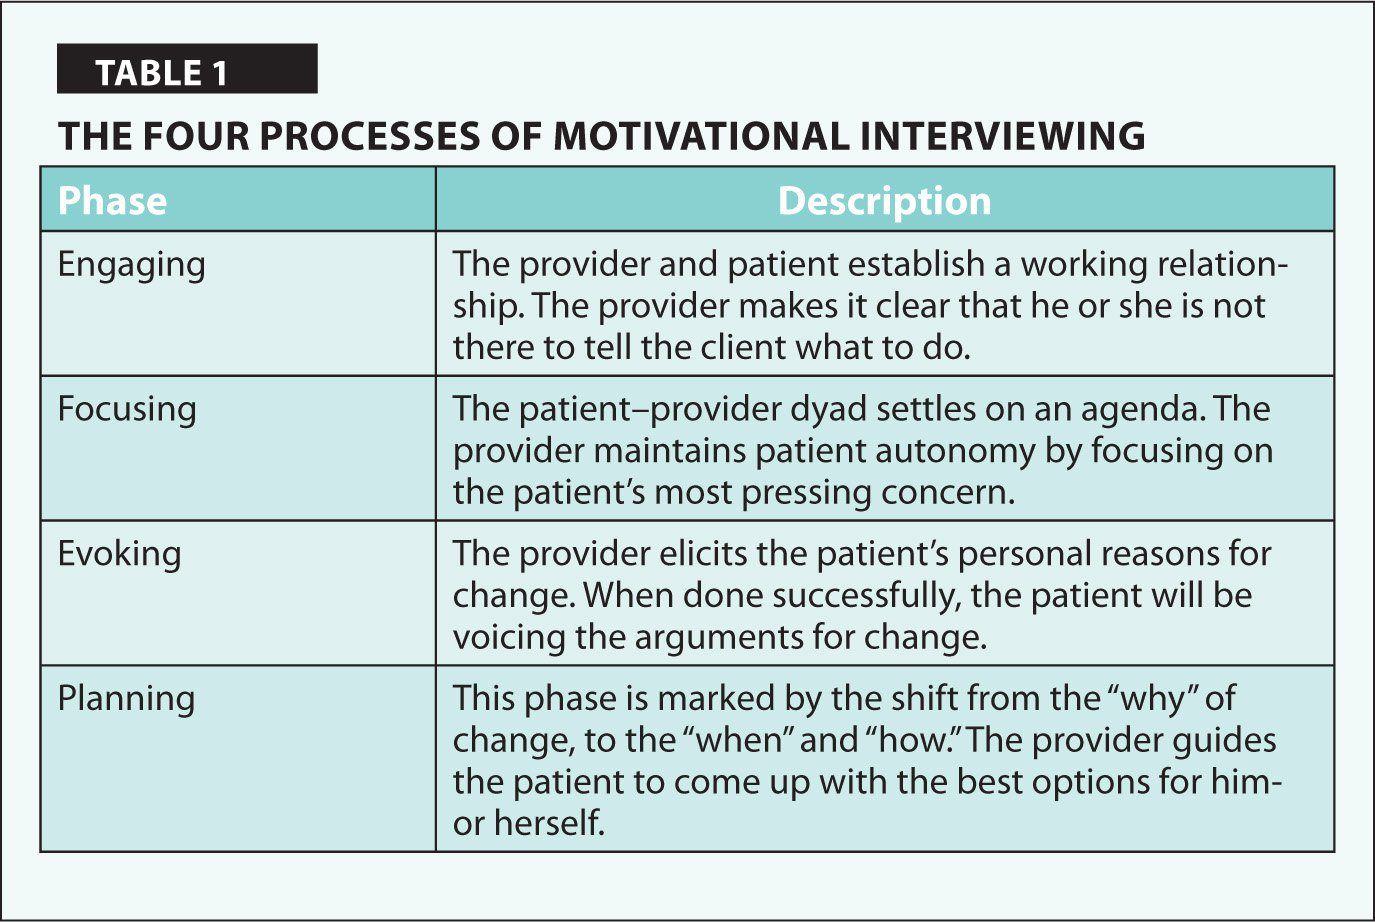 The Four Processes of Motivational Interviewing